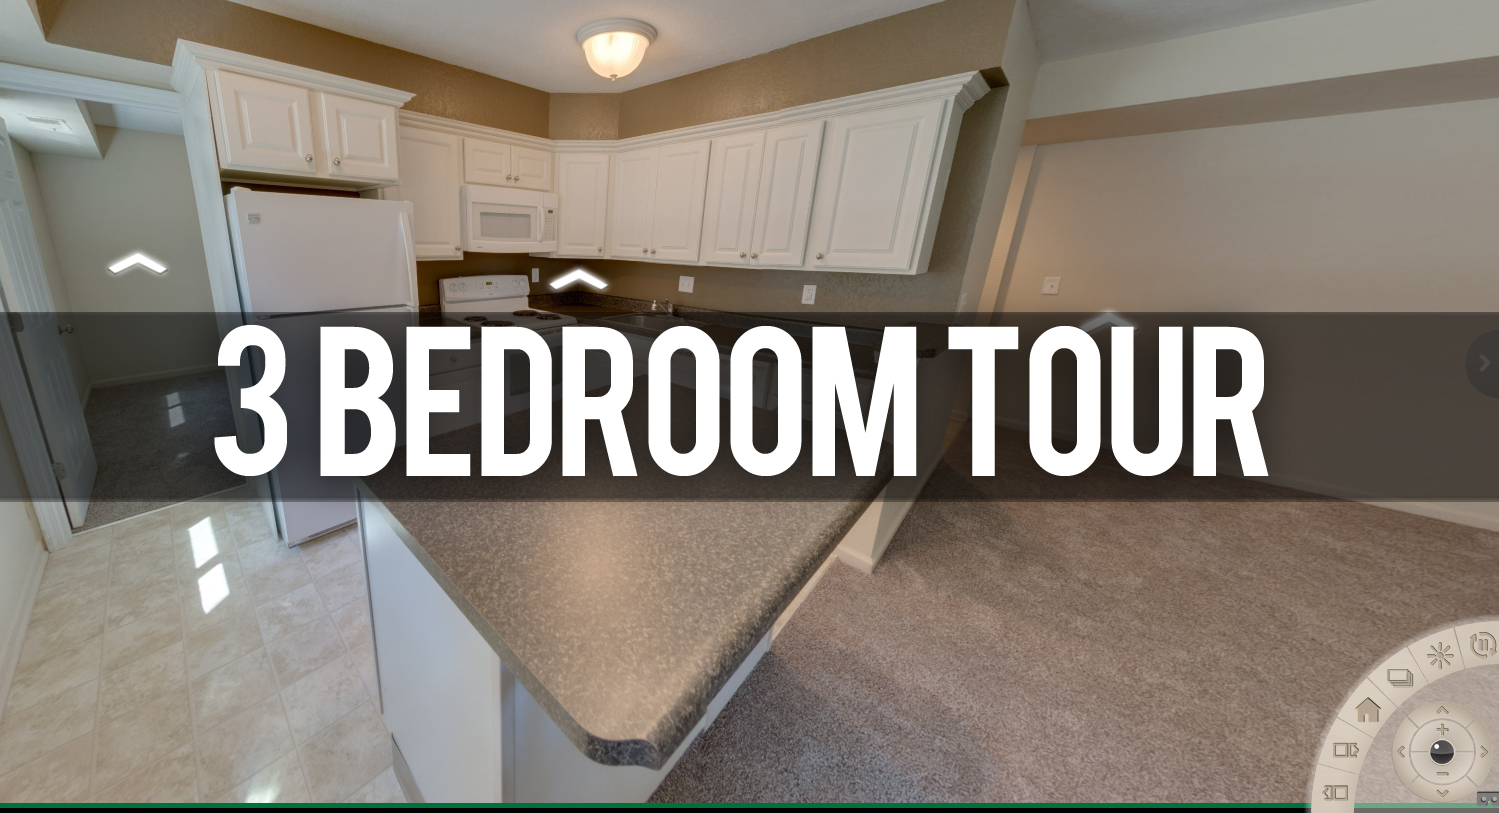 3 Bedroom Tour at Glenwood Apartments in East Lansing, MI